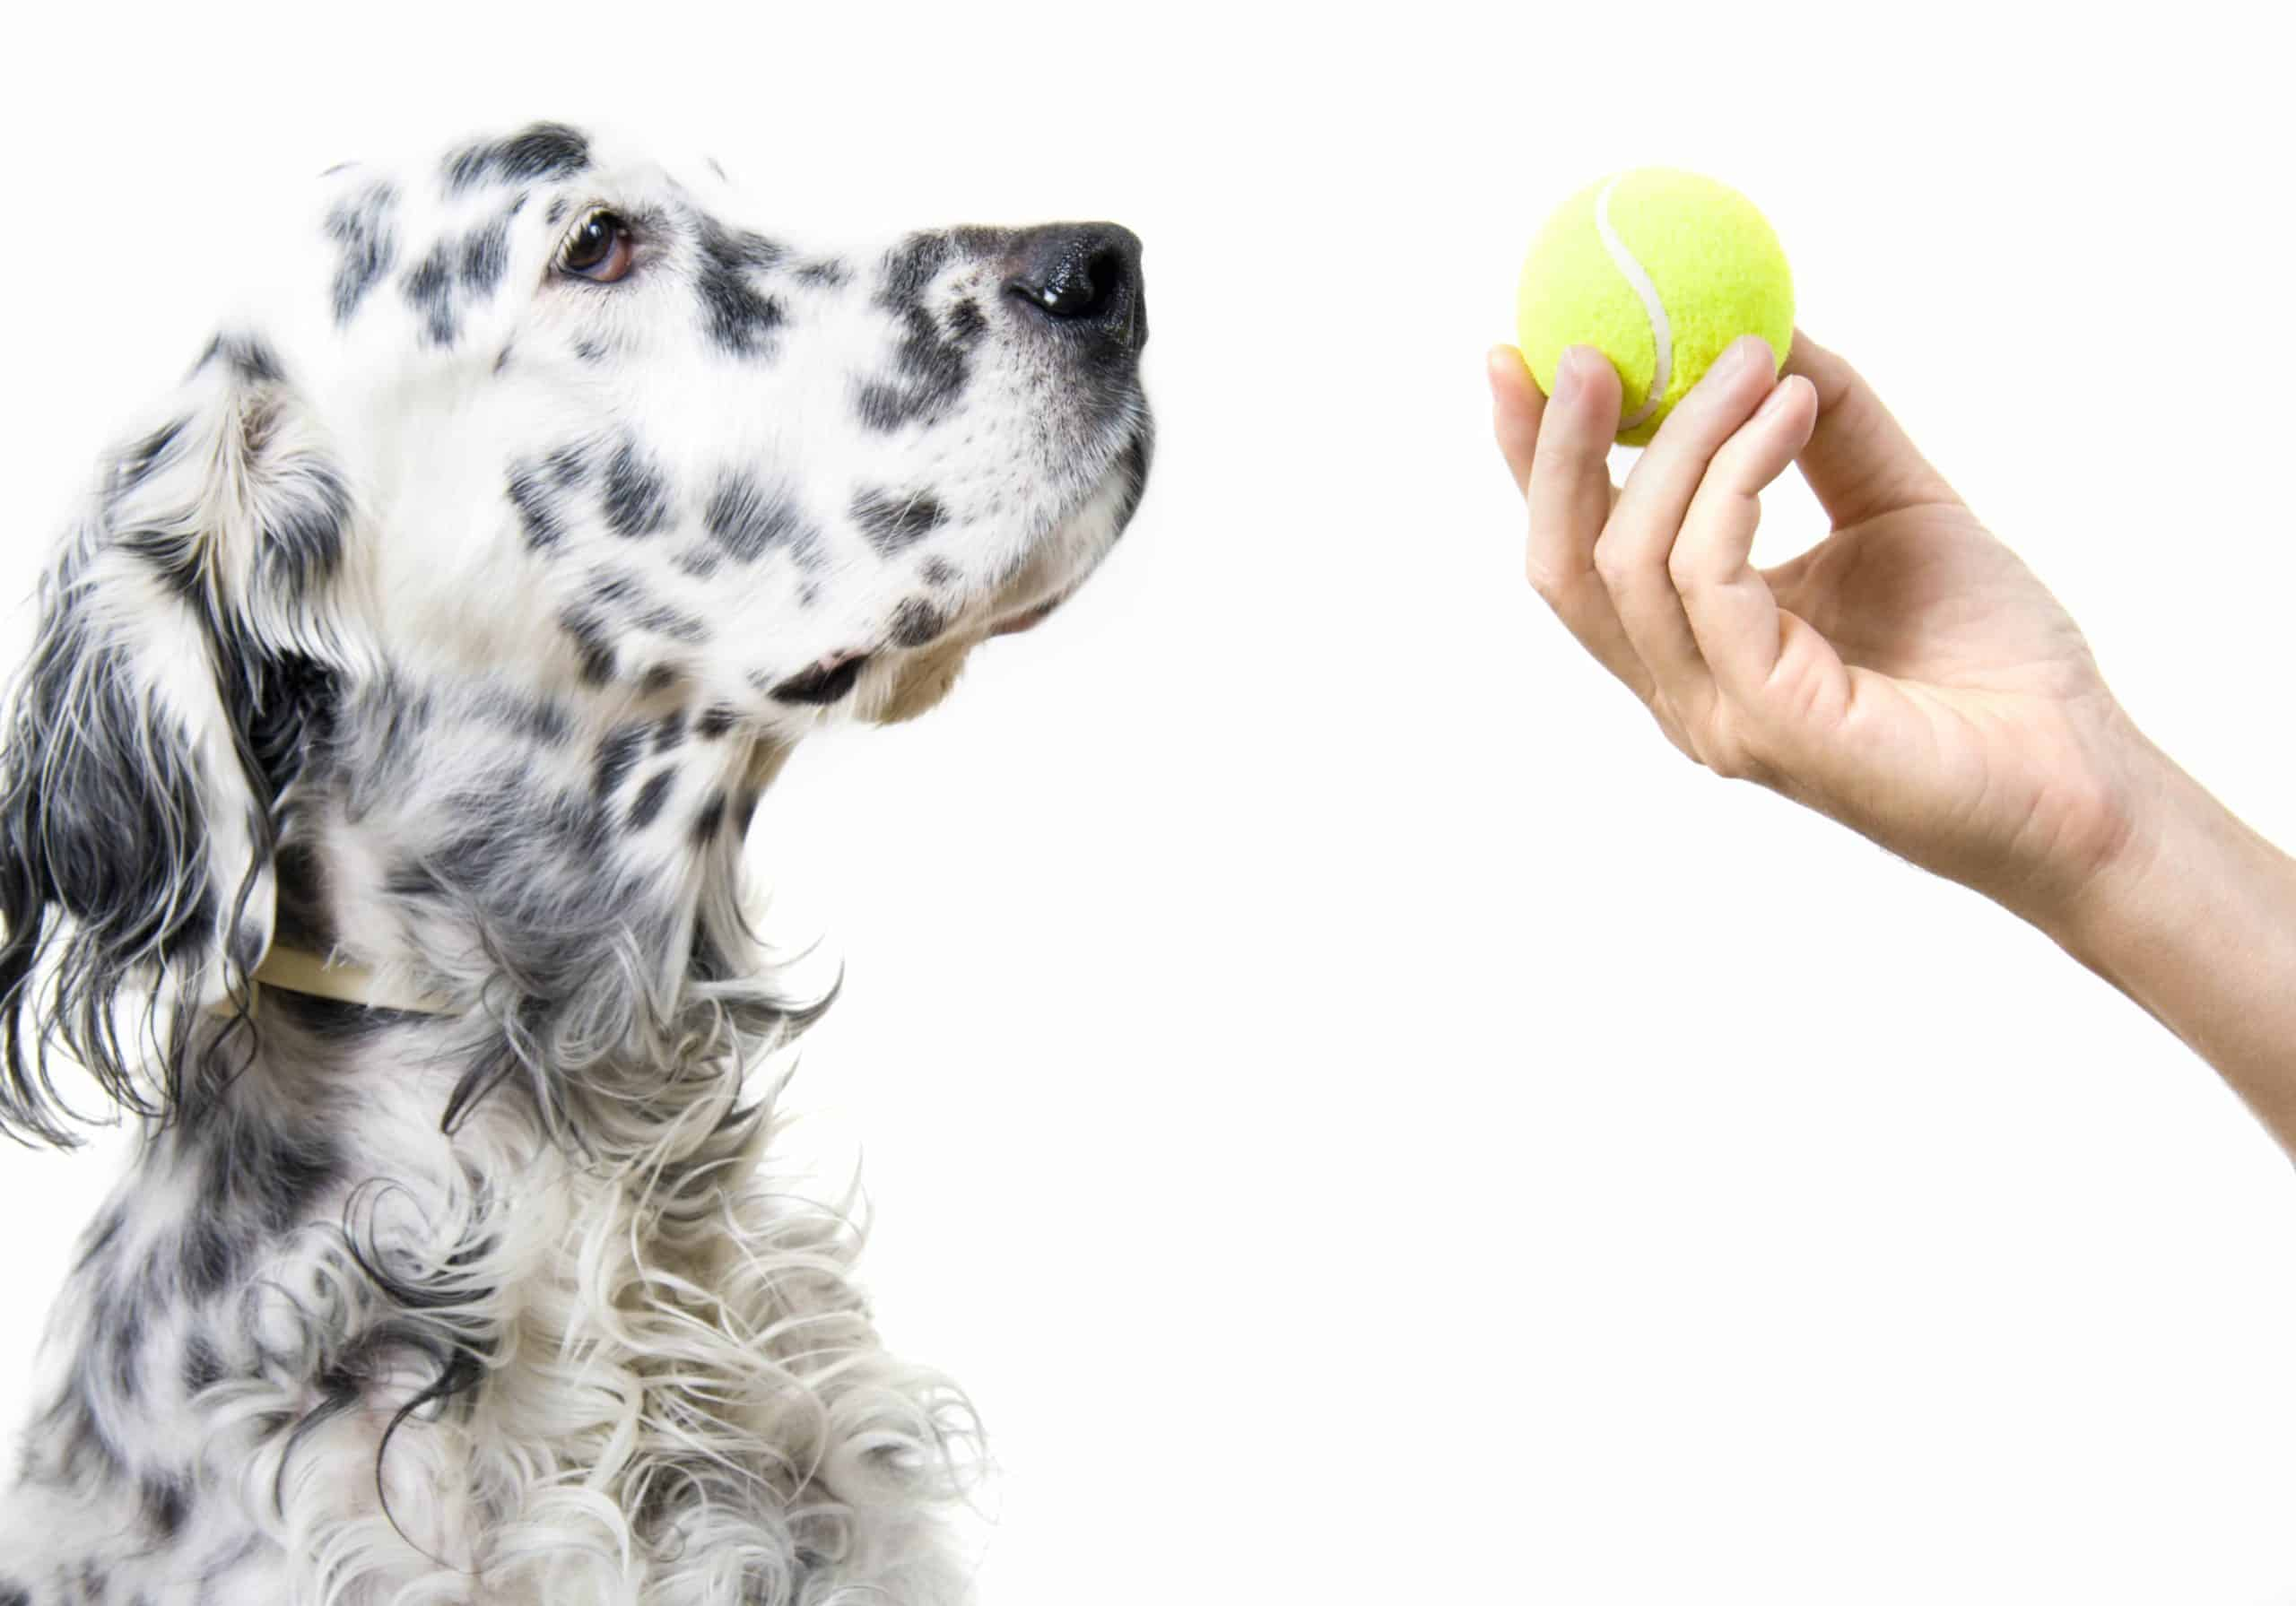 Dalmatian dog looks at a tennis ball in his owner's hand. Buy tennis balls specially made for dogs and supervise play to reduce risks of choking or dental damage, and digestion problems.